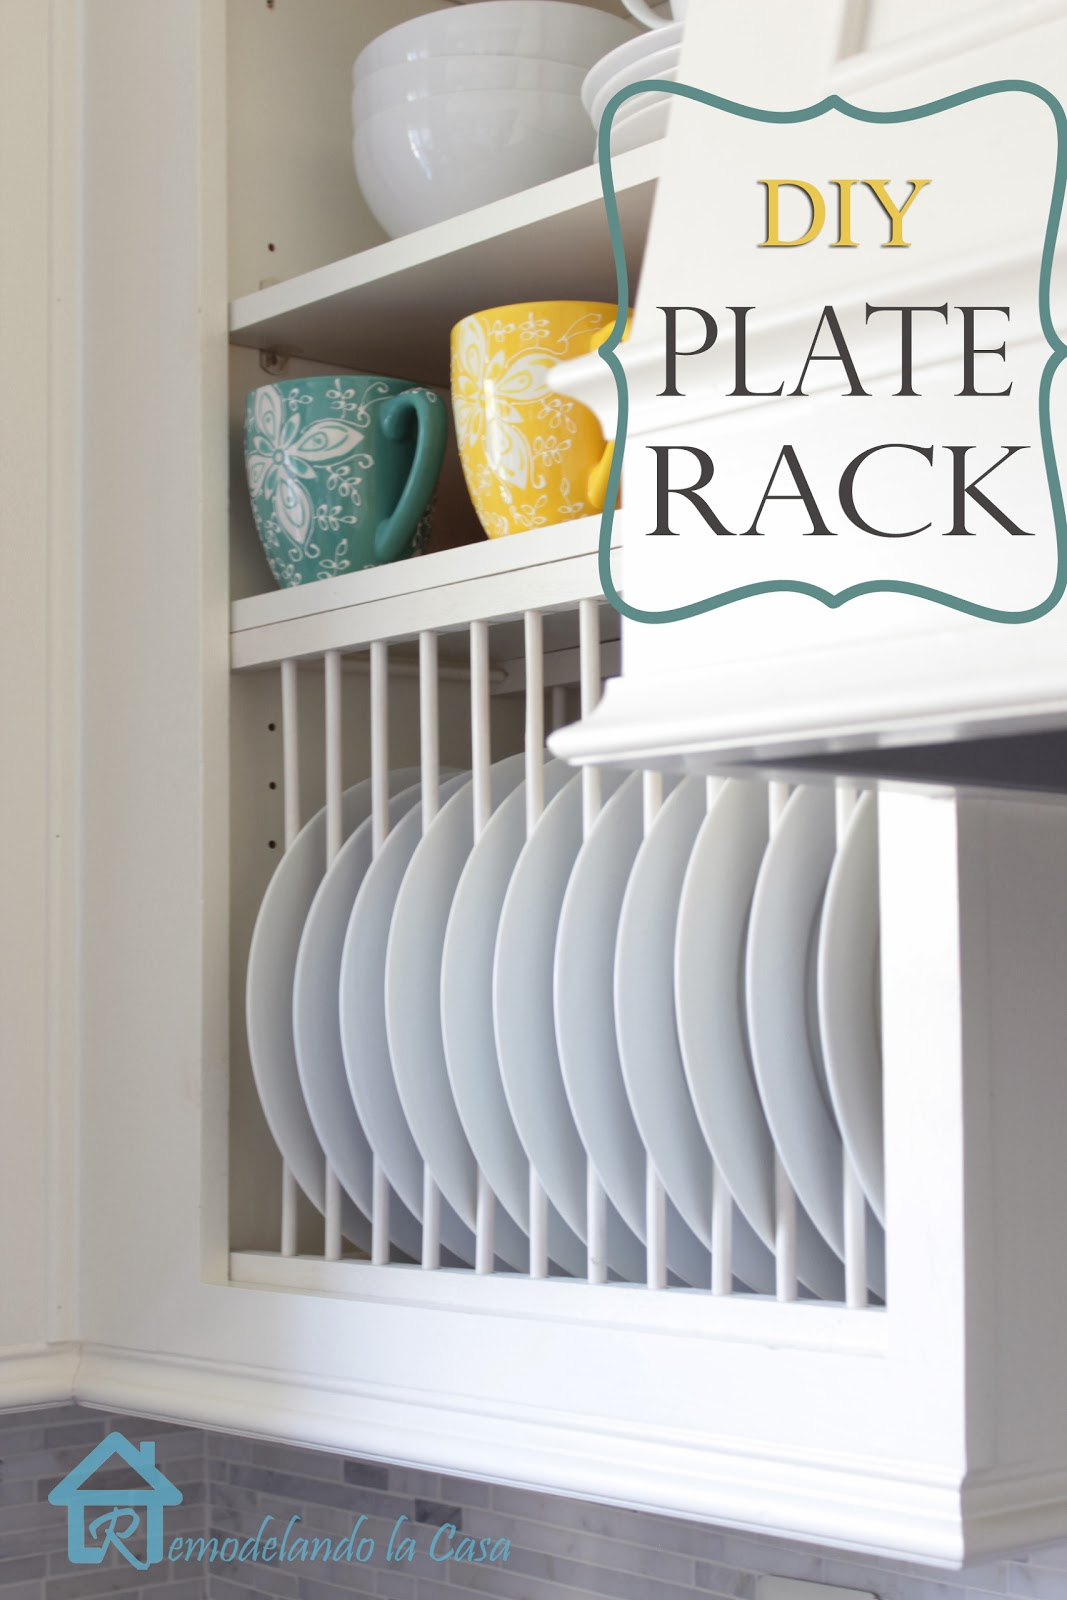 Charmant A Regular Cabinet Is Giving A Plate Rack With Round And Square Dowels